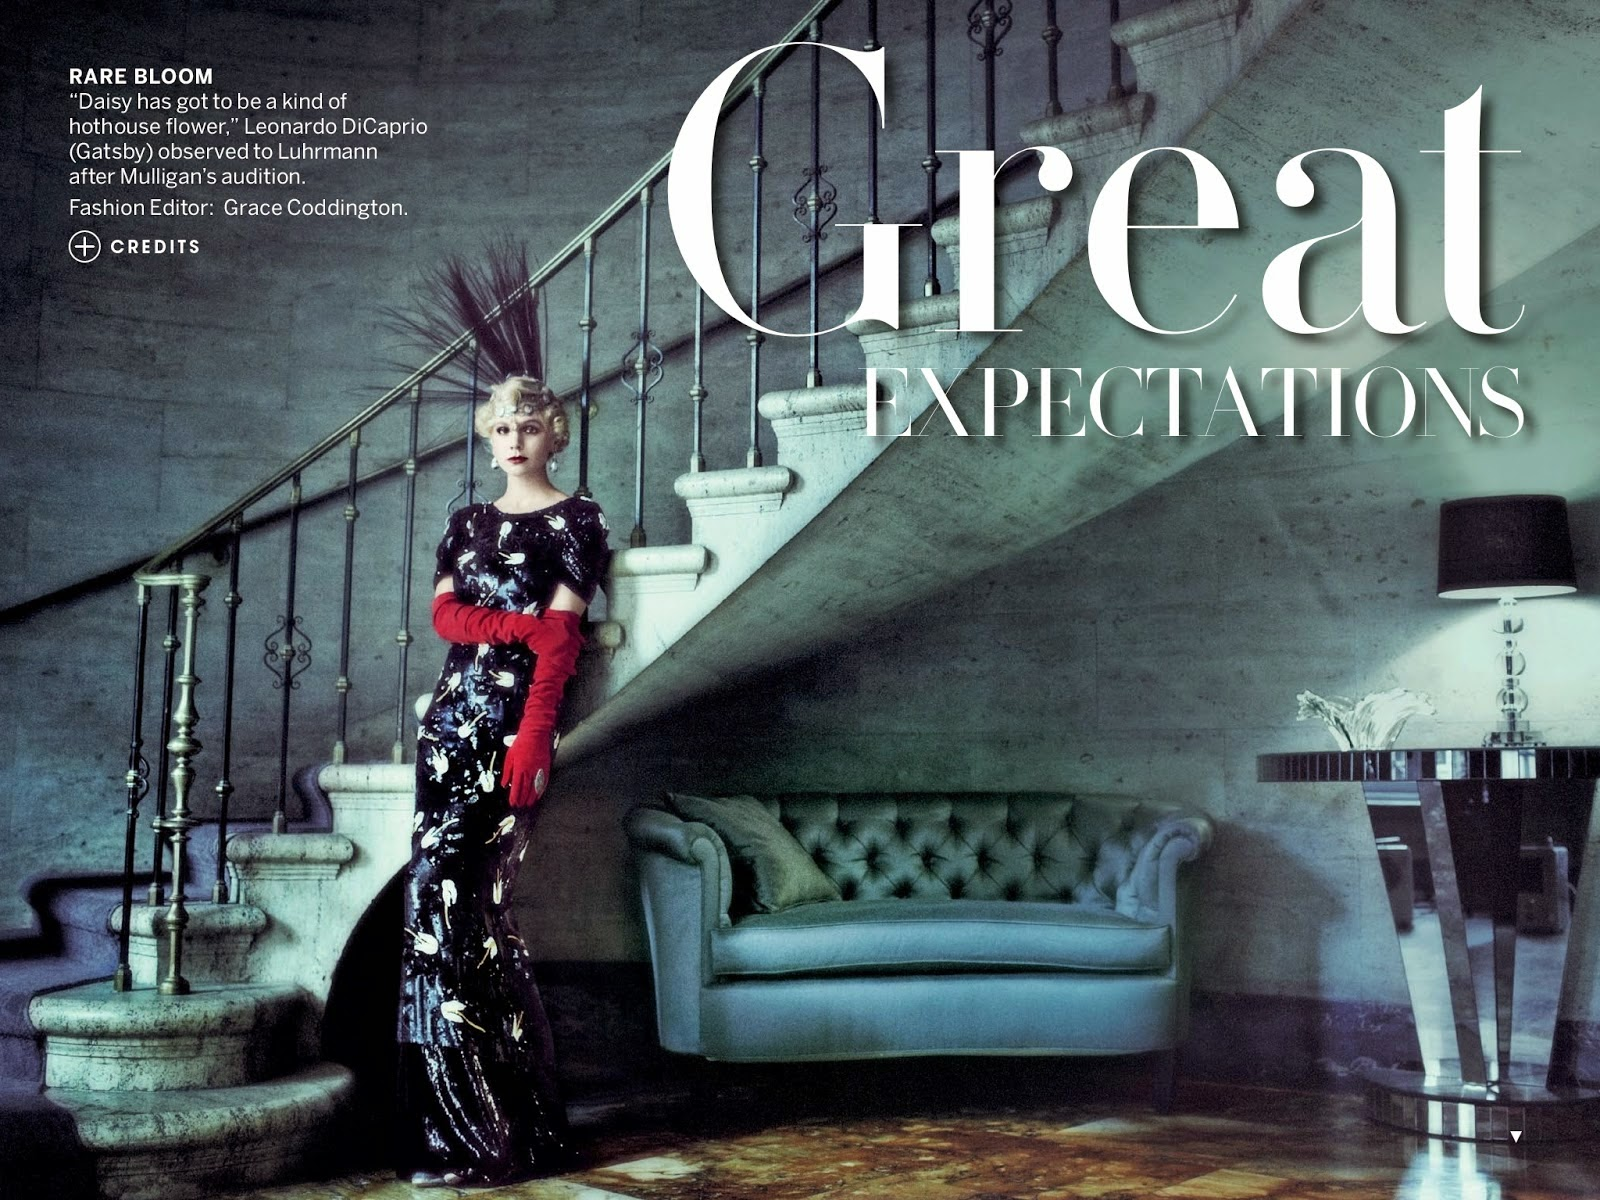 Carey Mulligan in 'Great Expectations' editorial by Mario Testino and styled by Grace Coddington for Vogue May 2013 | Ses Rêveries